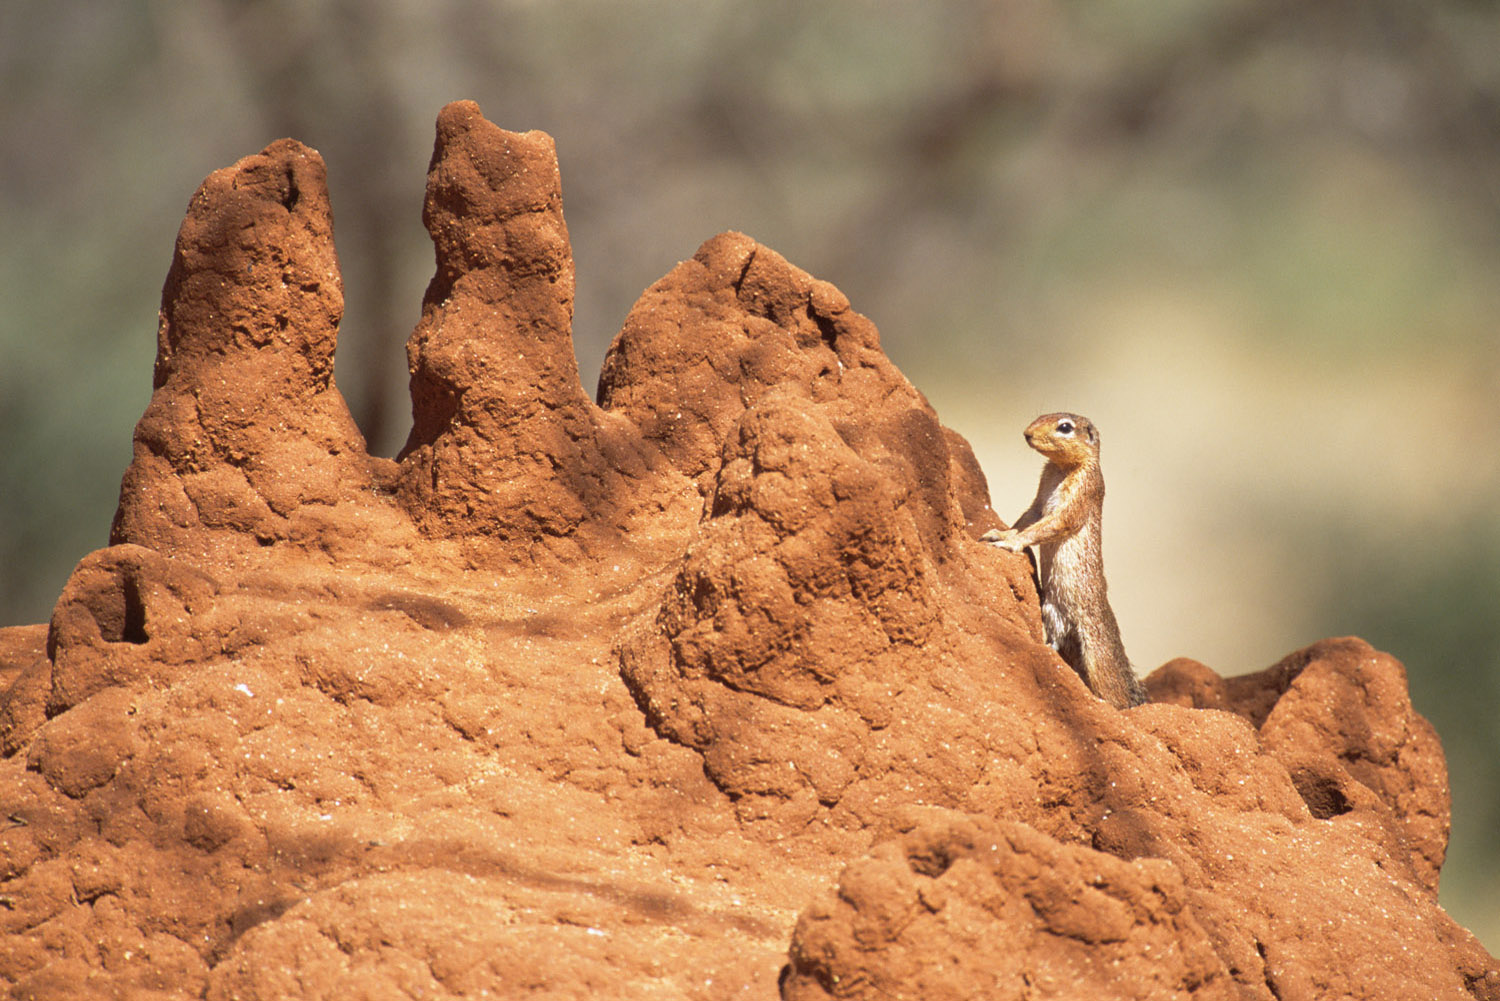 Striped ground squirrel on termite hill, Samburu National Reserve, Kenya